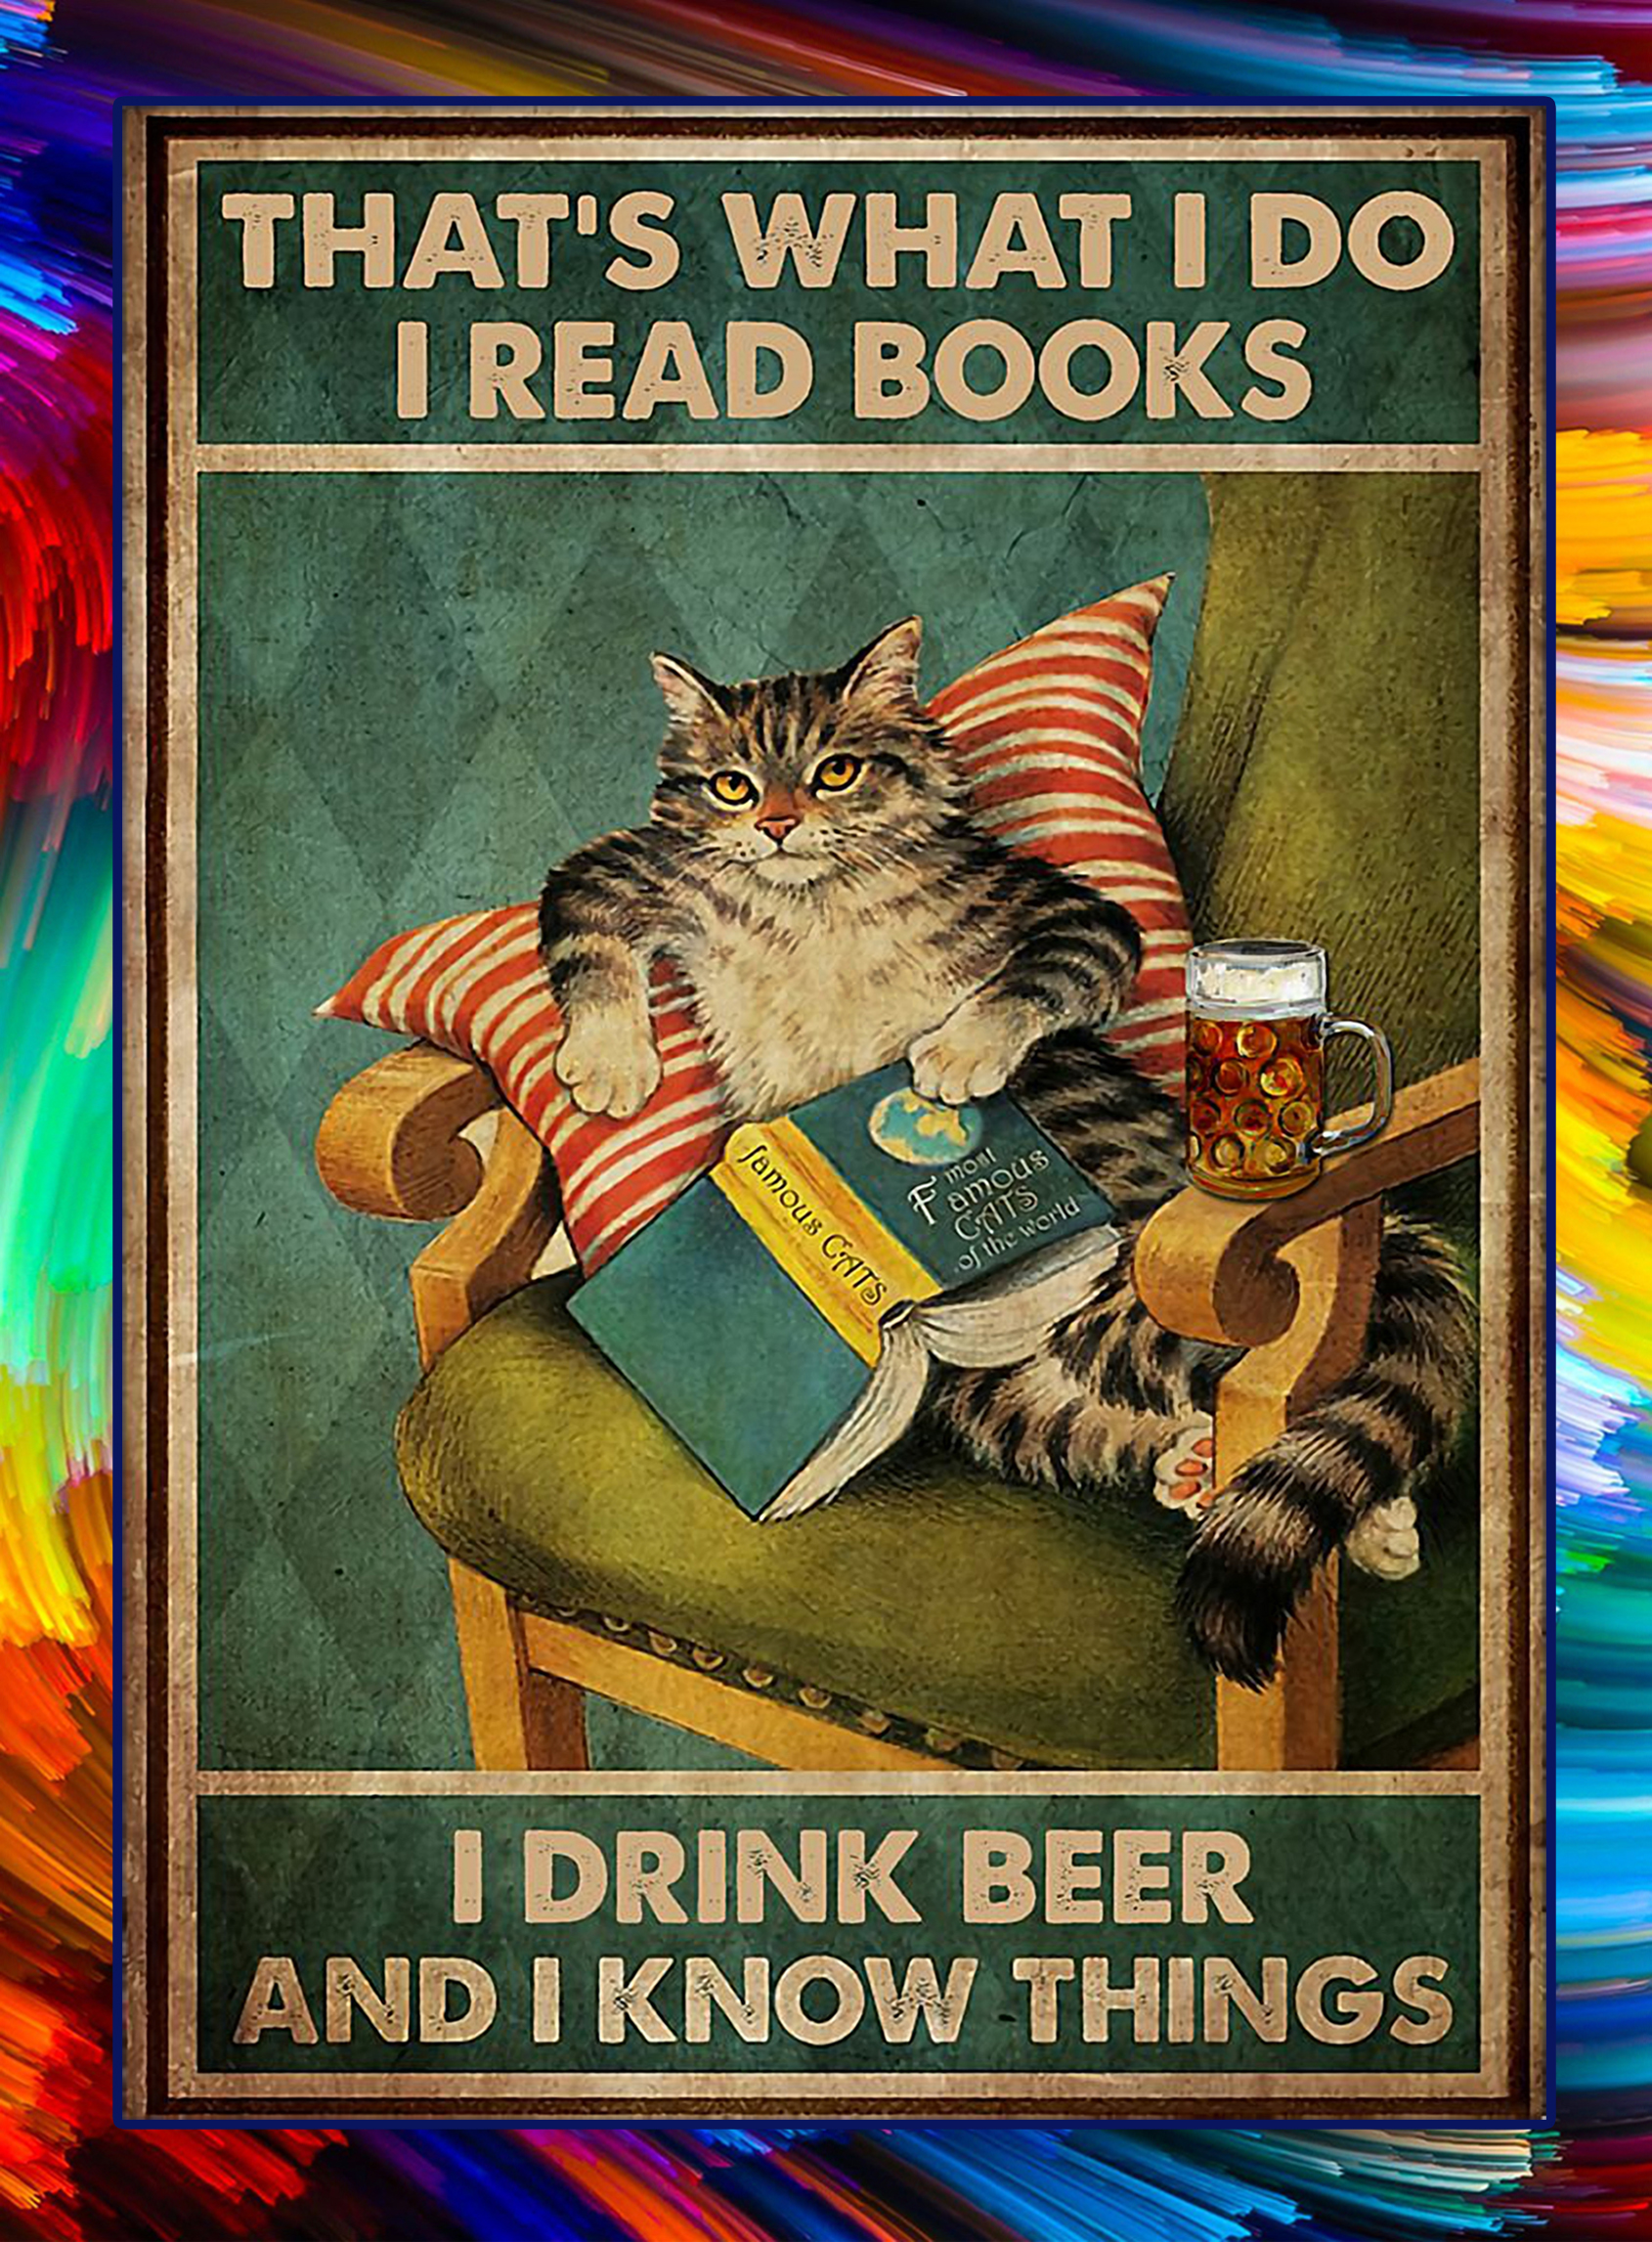 Cat that's what I do I read books I drink beer and I know things poster - A2